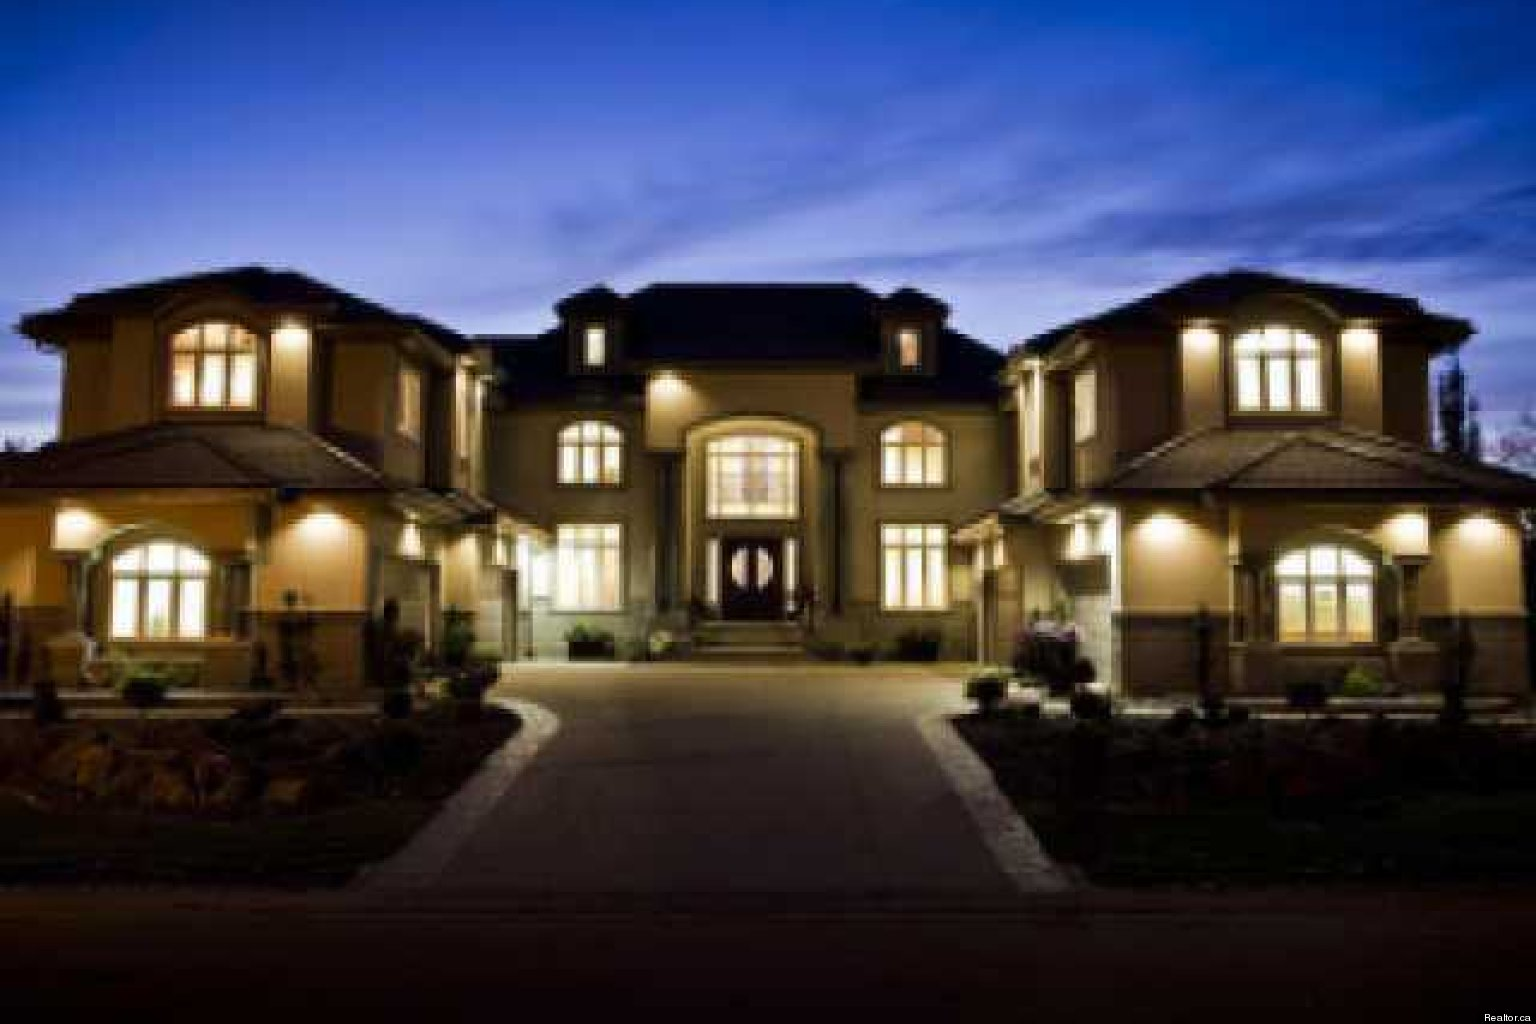 most expensive houses for sale in edmonton photos november 2012 edition